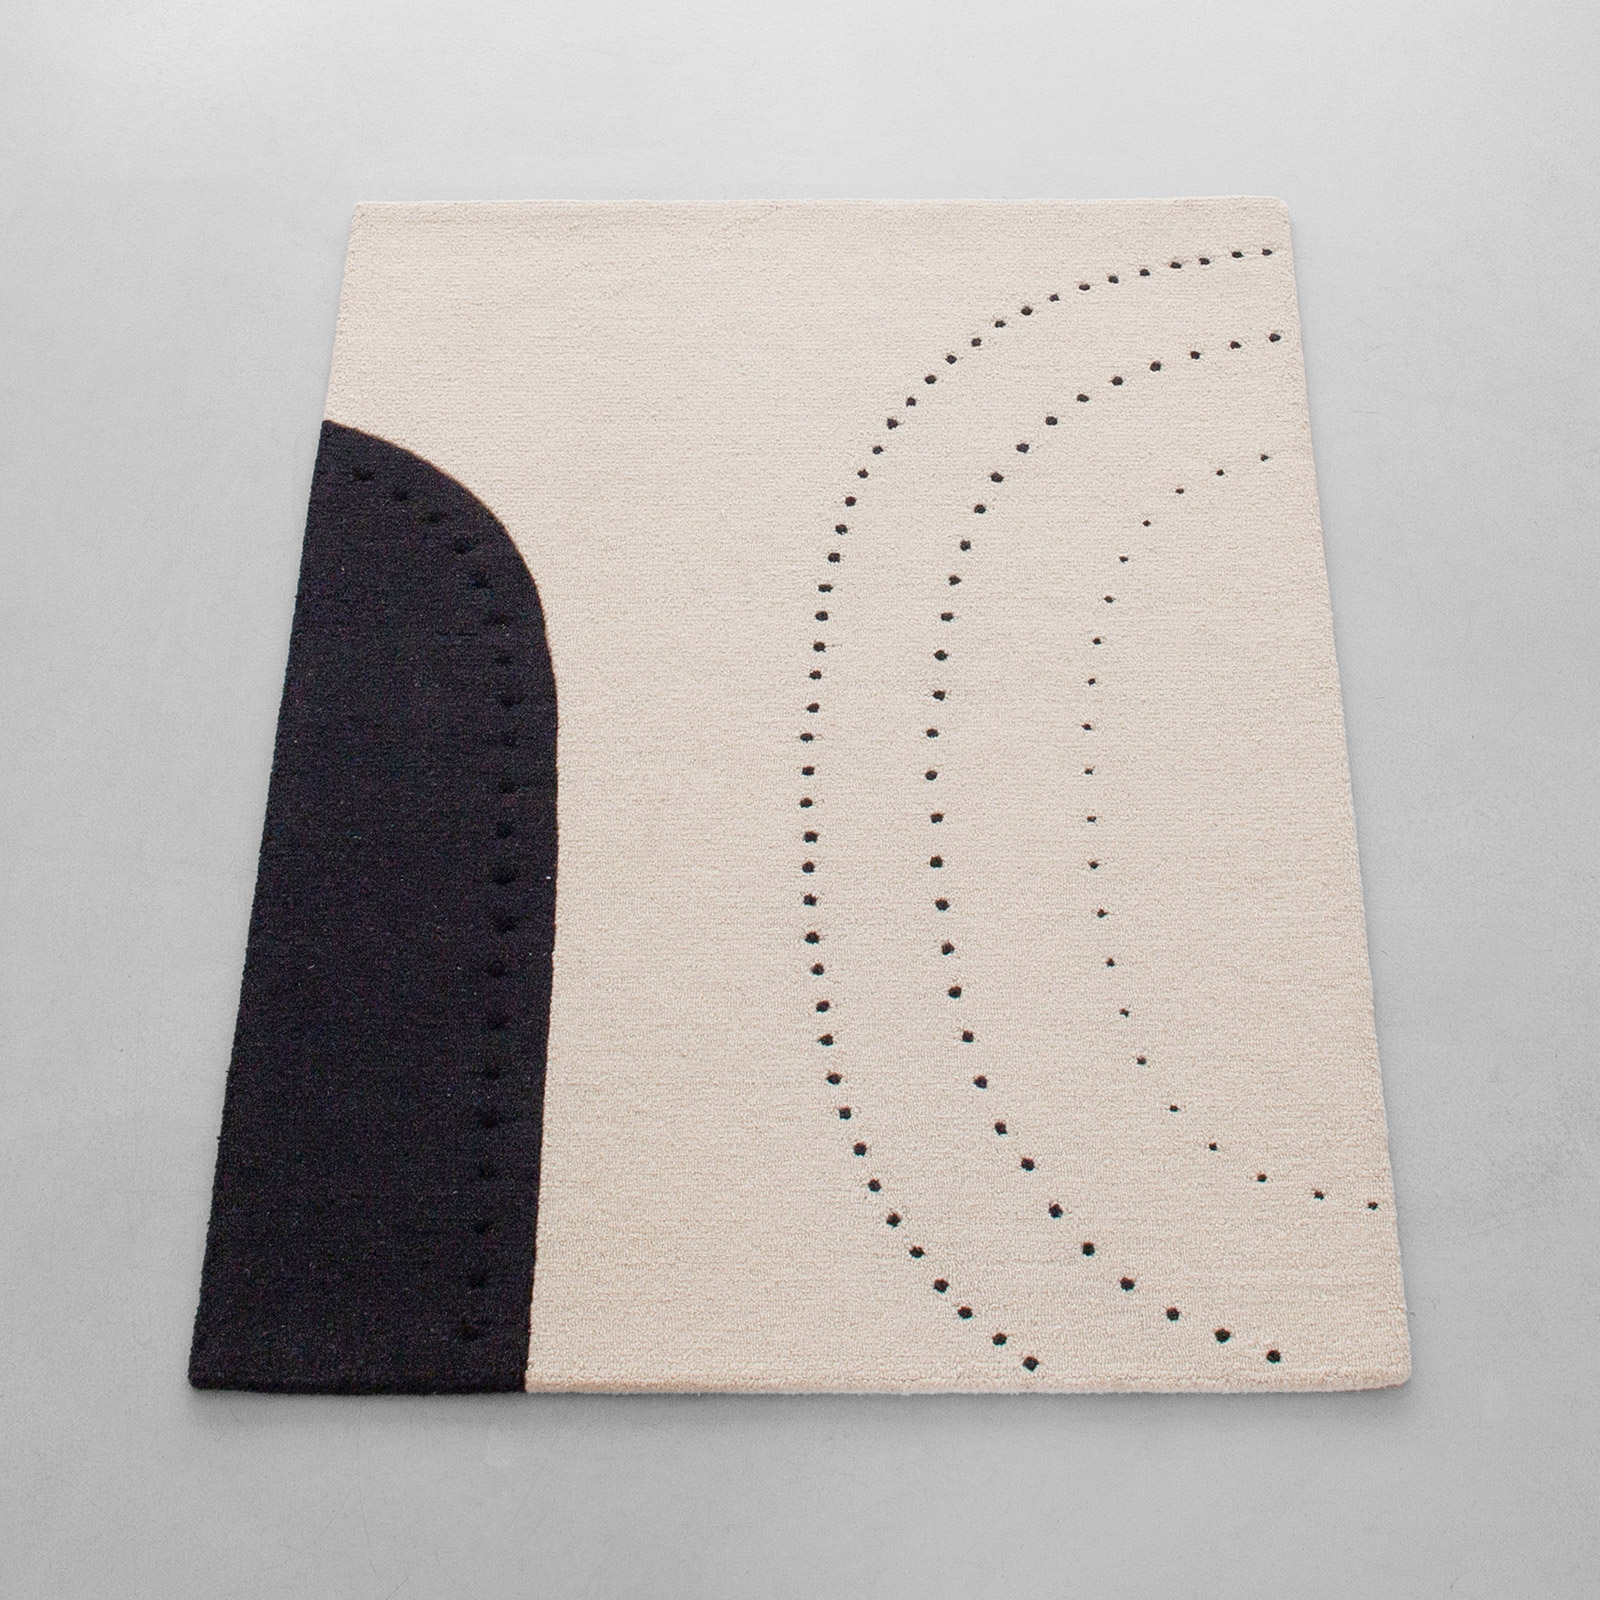 Dotted balance rug in cream and black on grey floor